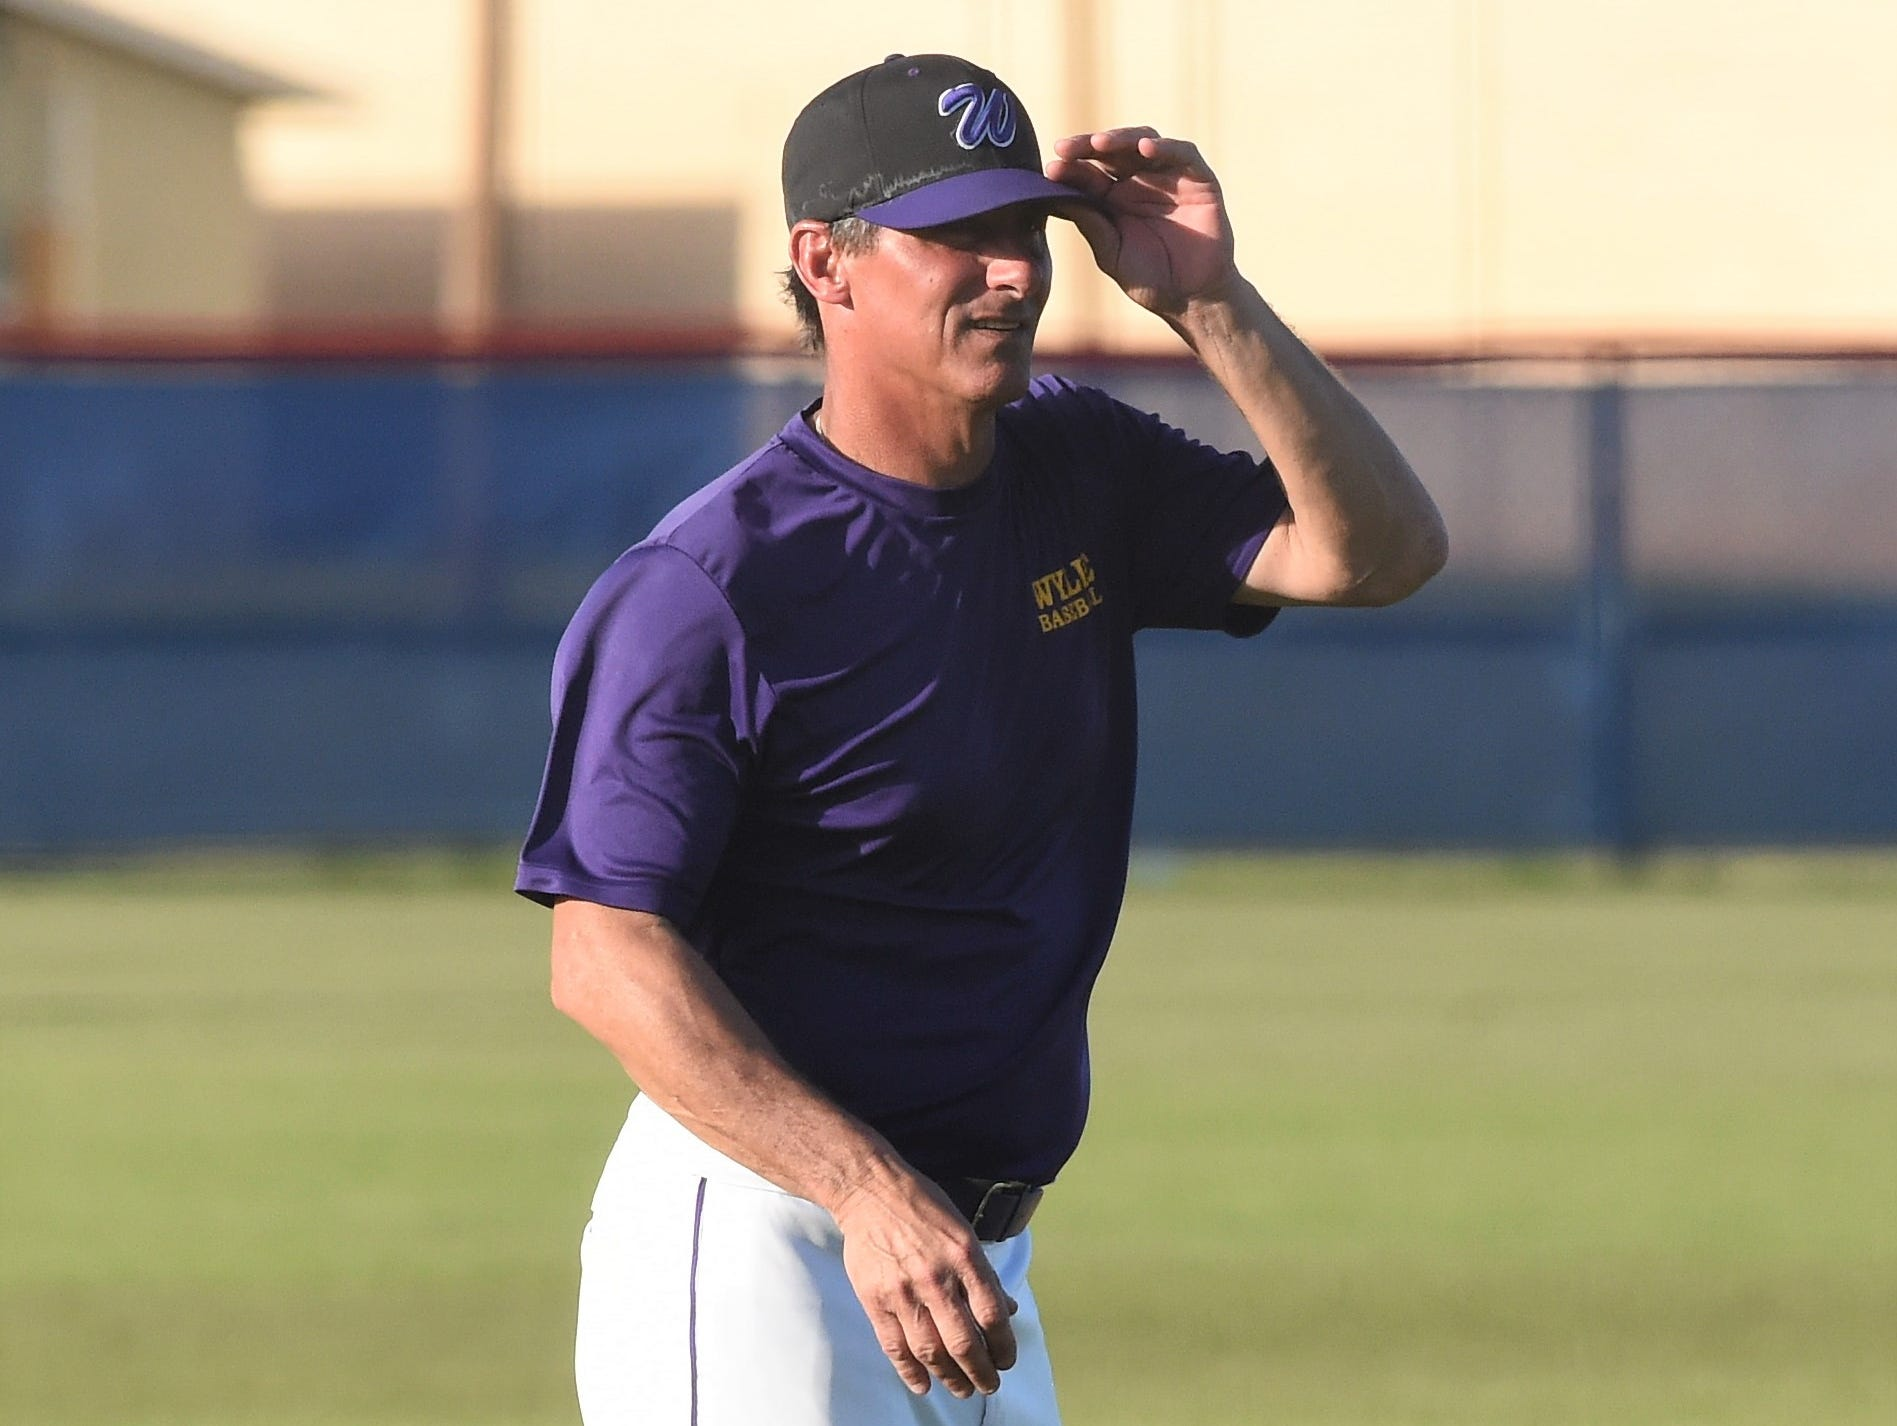 Wylie coach Clay Martin gives signs from third base against Cooper at Cougar Field on Tuesday, April 9, 2019. The Bulldogs won 11-5 and will go for the District 4-5A sweep on Friday at home.